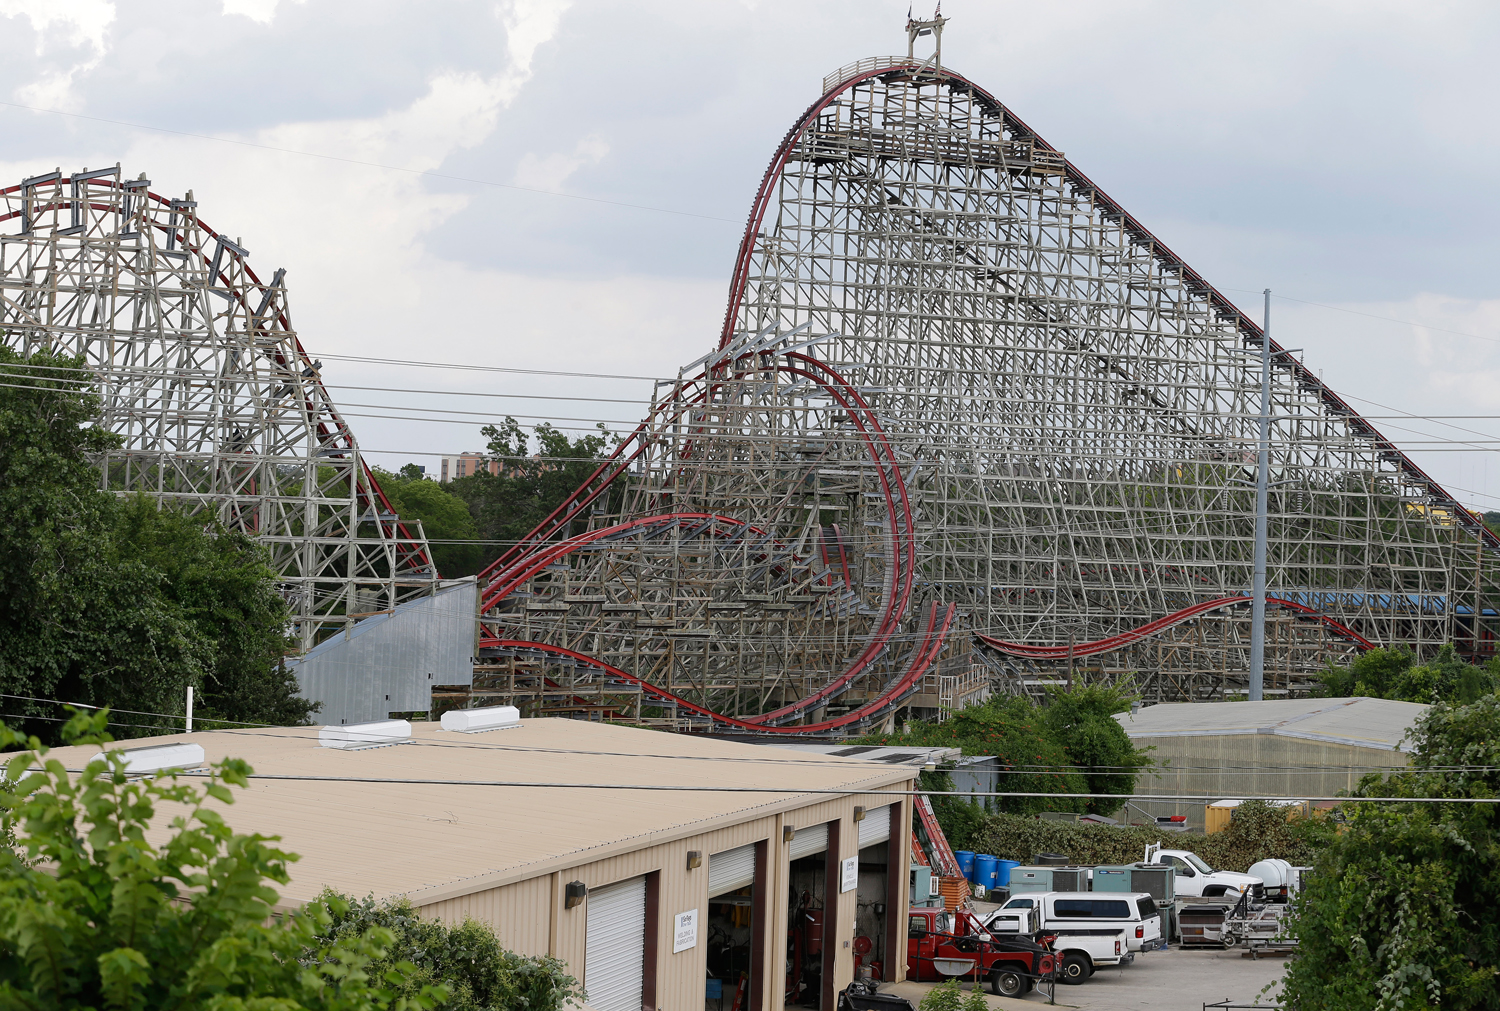 The Texas Giant roller coaster ride sits idle at the Six Flags Over Texas park Saturday, July 20, 2013, in Arlington, Texas. Investigators will try to...